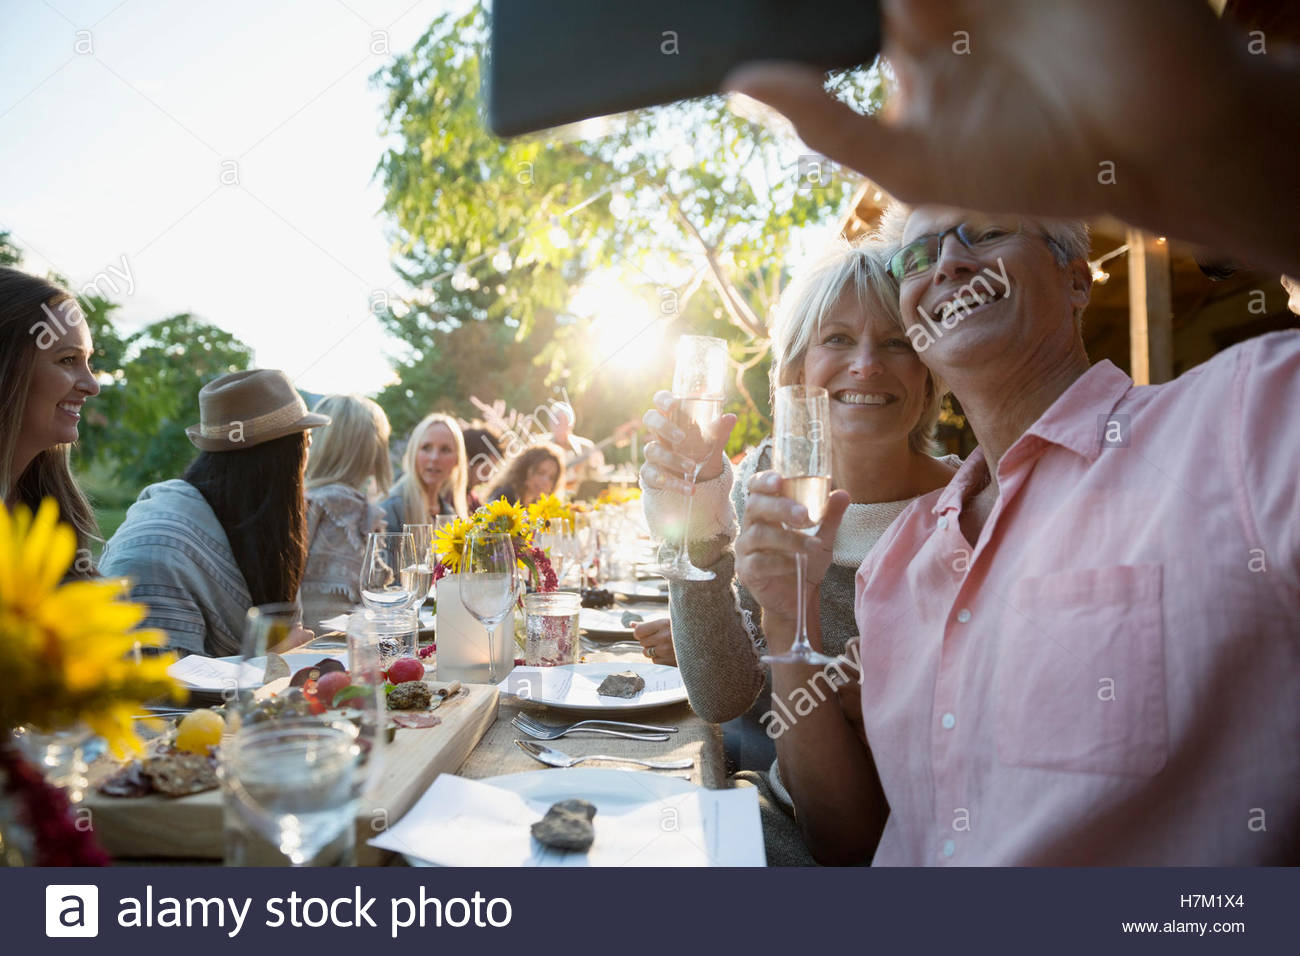 Couple drinking champagne and taking selfie at outdoor harvest dinner party Stock Photo